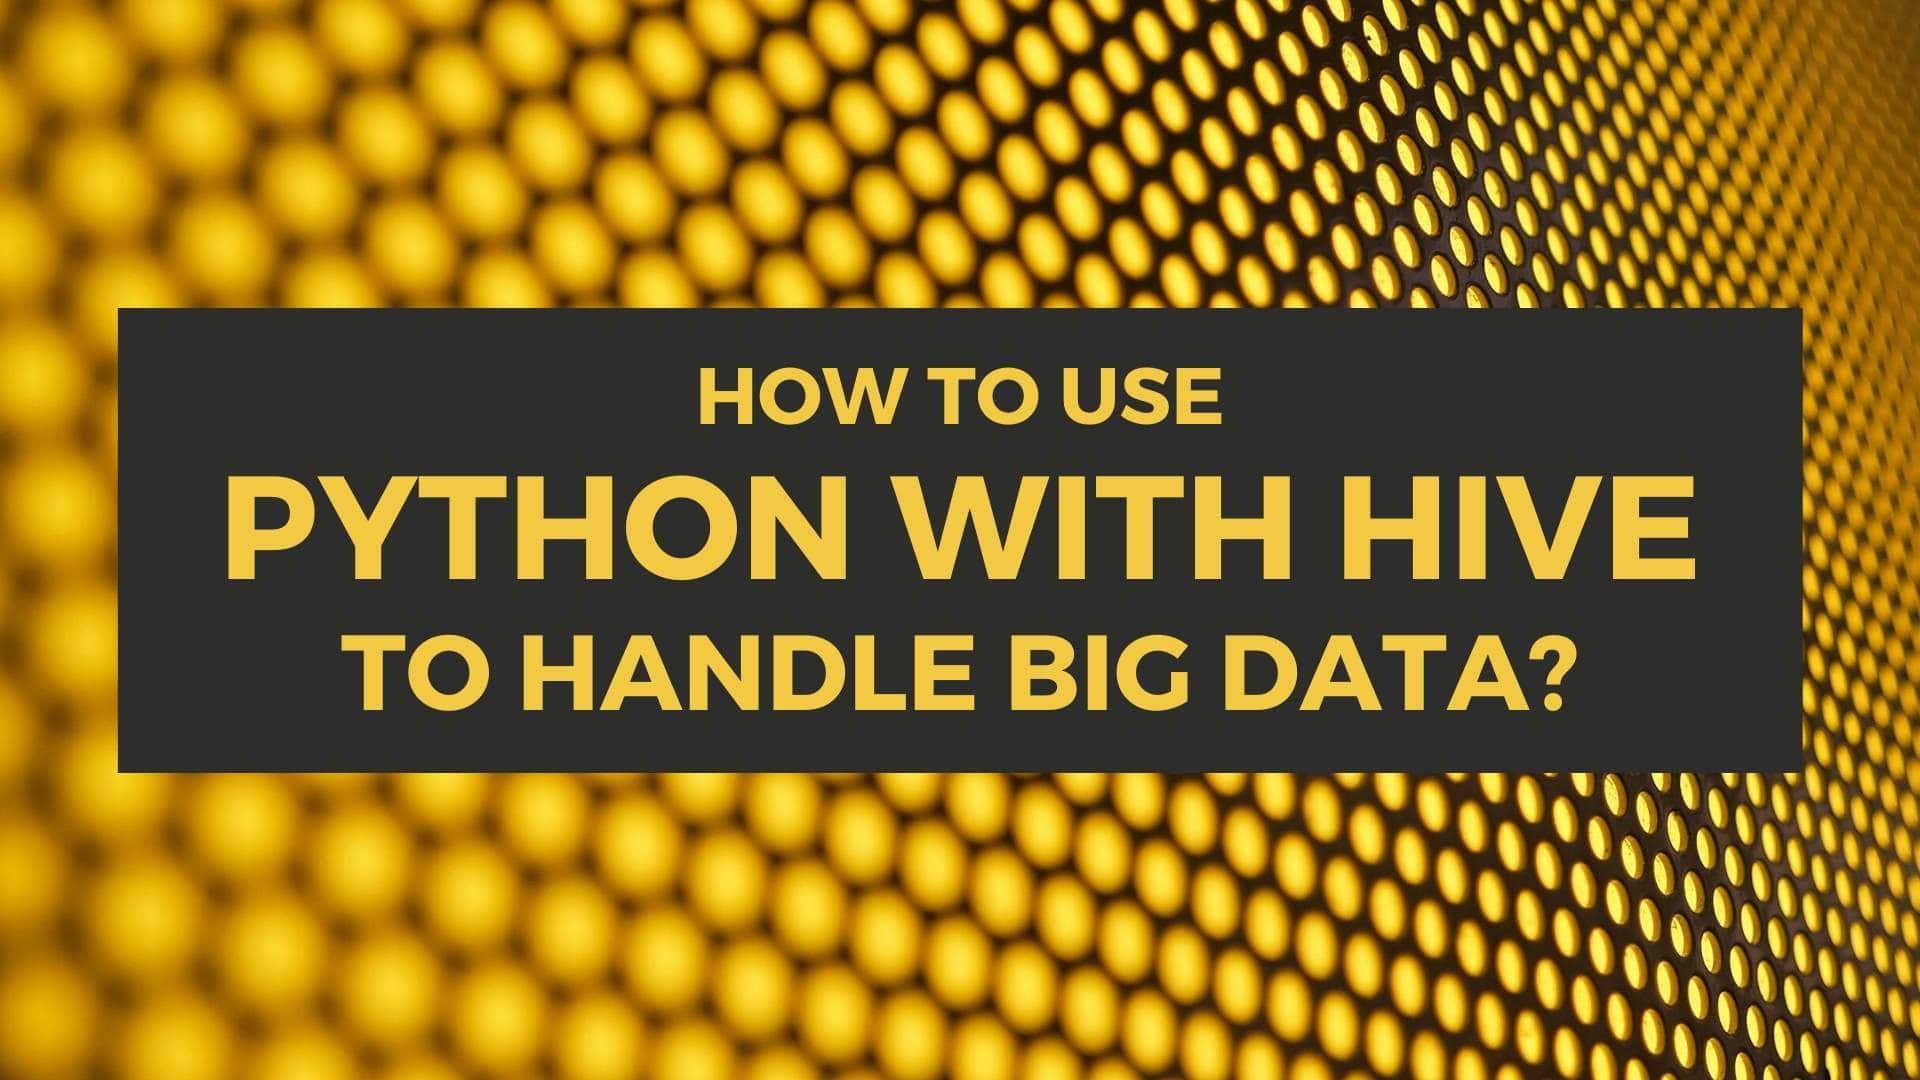 How to use Python with Hive to handle big data?